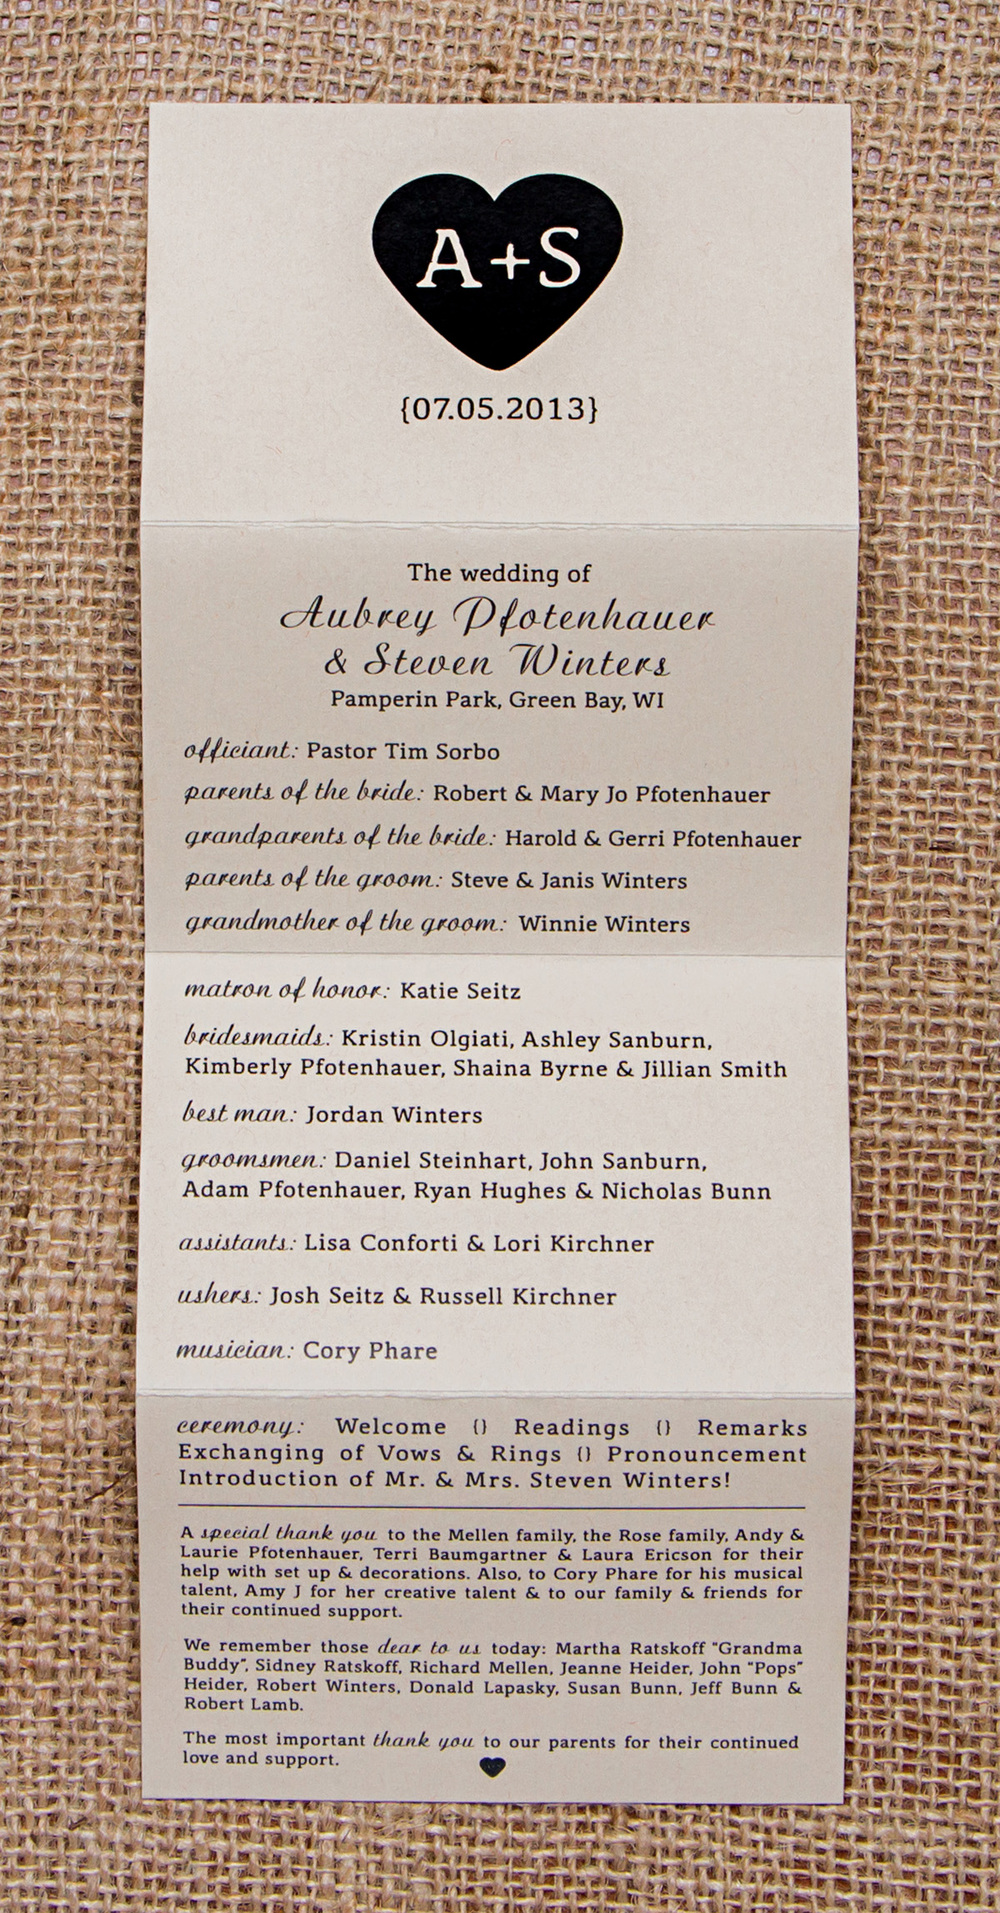 A + S Wedding Program Card